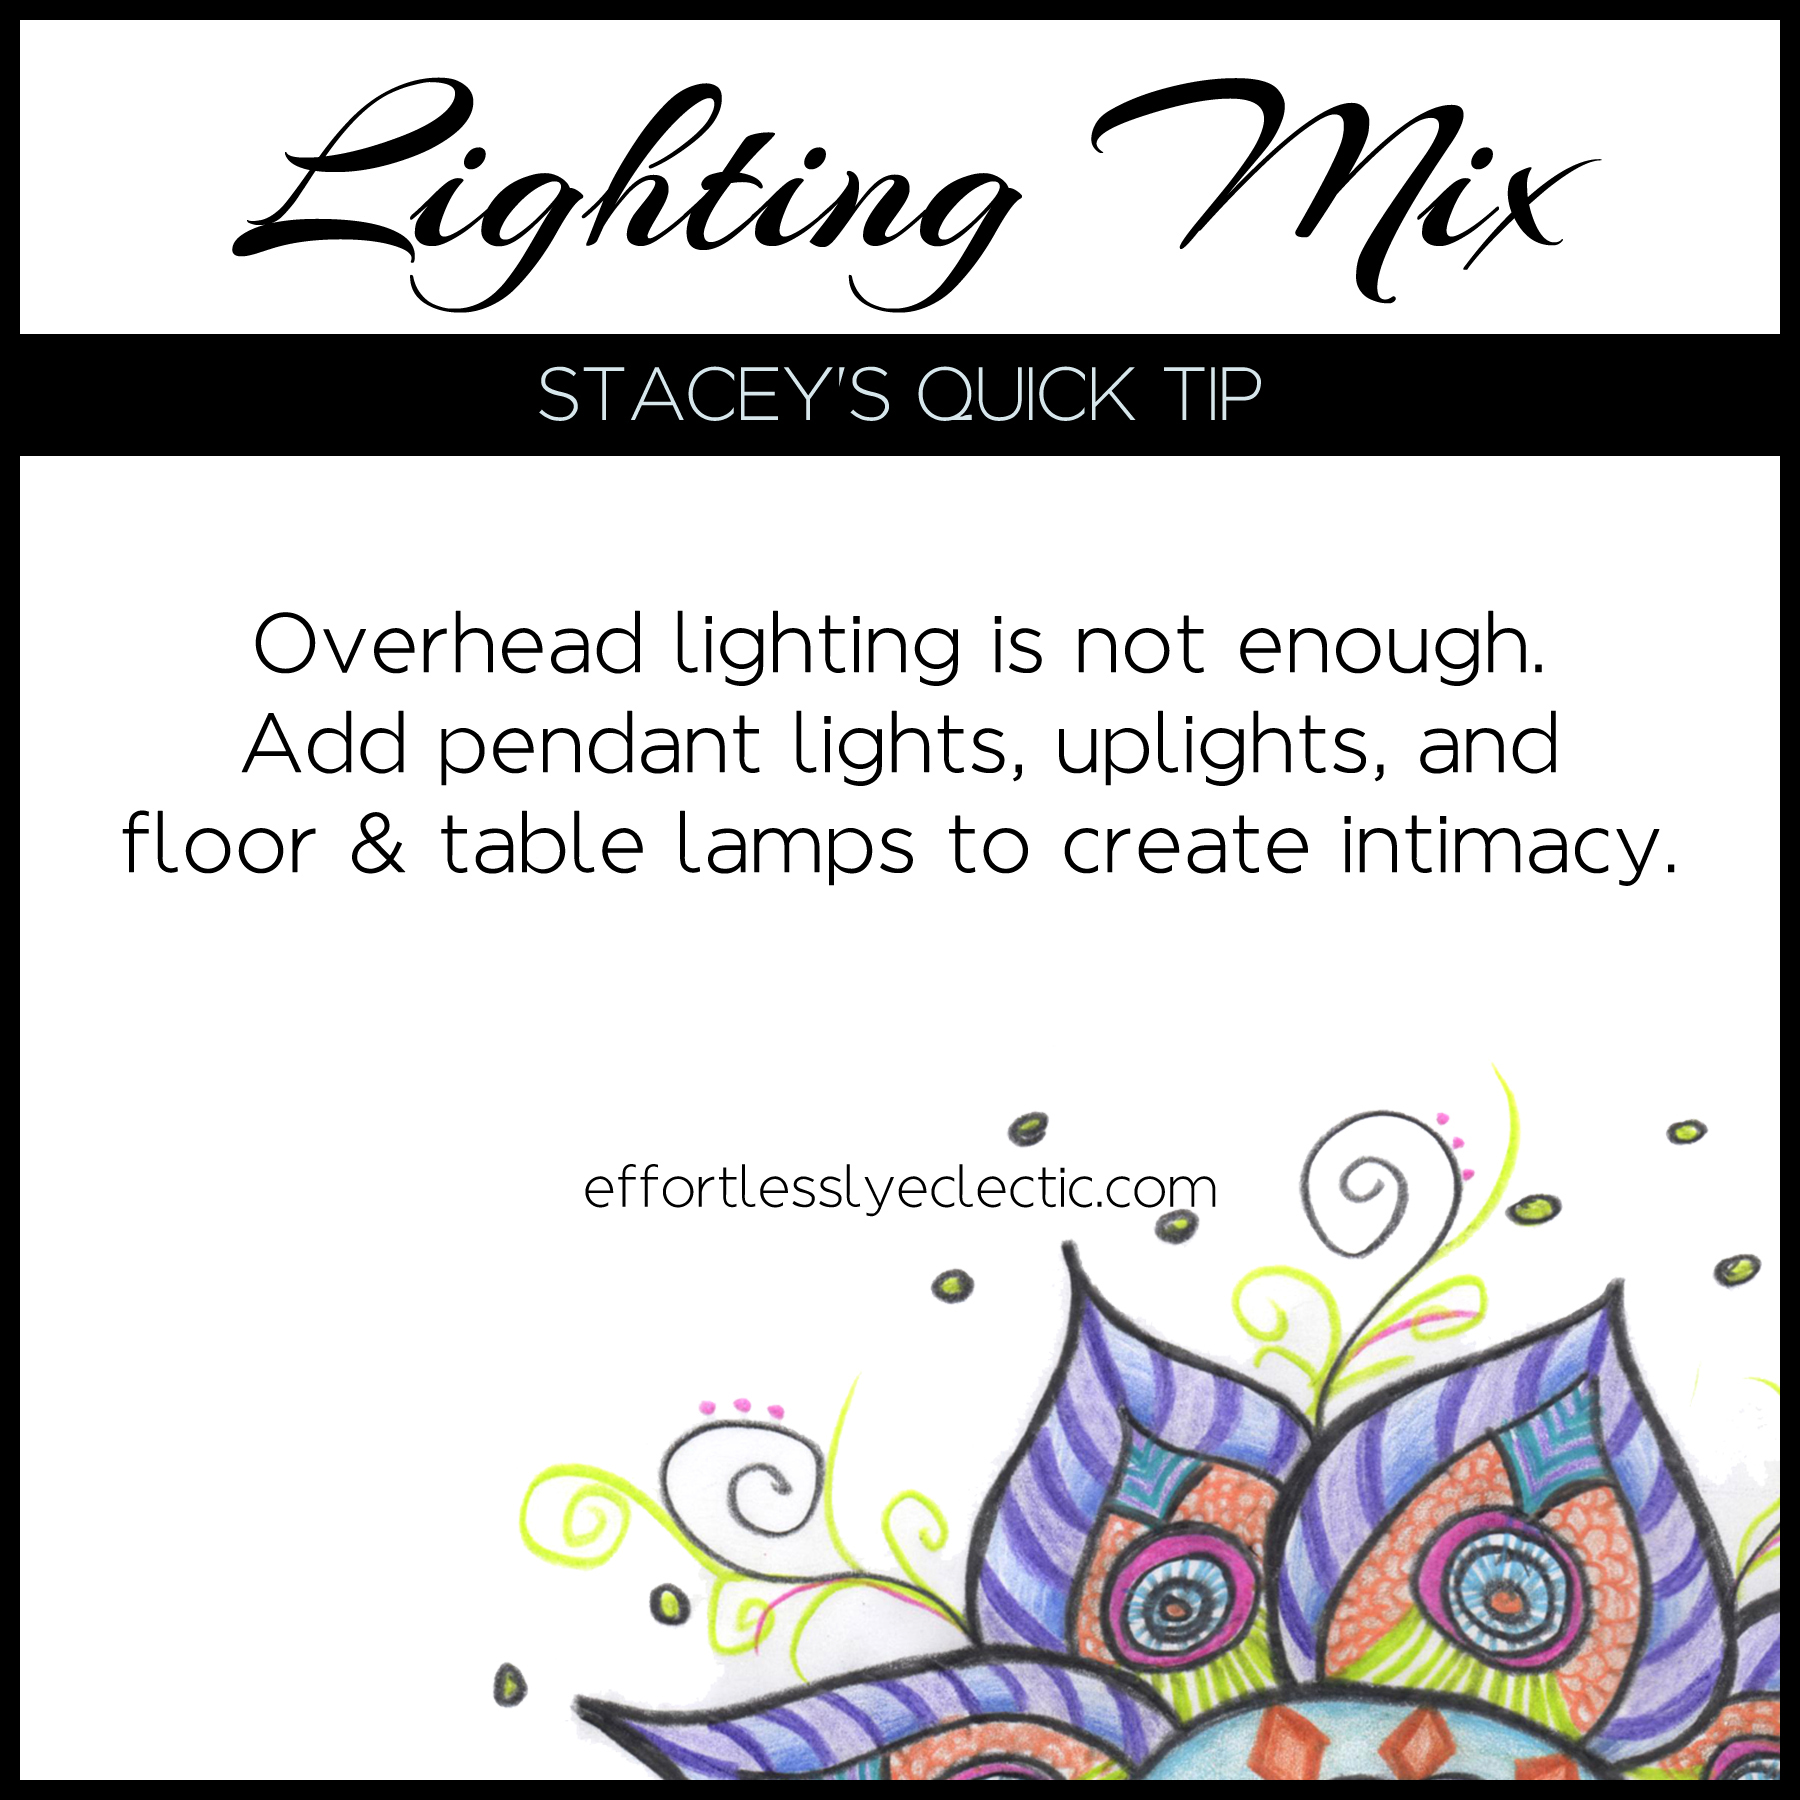 Lighting Mix - A decorating tip about how to add lighting in your home